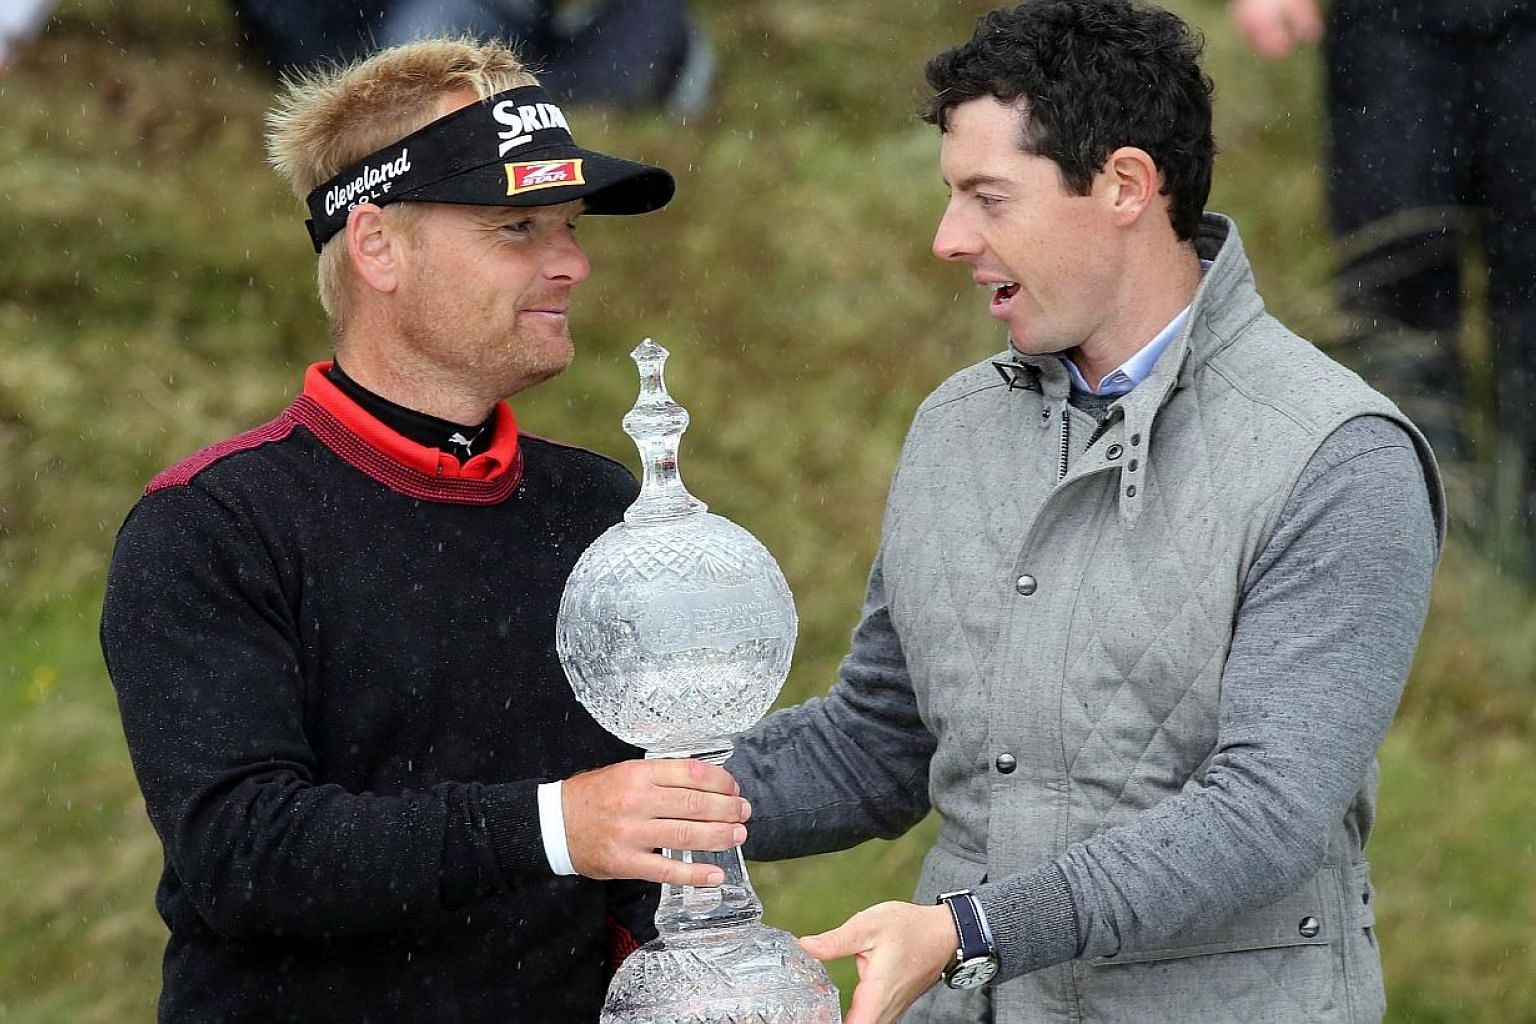 Soren Kjeldsen (left) of Denmark is handed the trophy by Northern Ireland's Rory McIlroy after winning the Irish open at the Royal County Down Golf Club in Newcastle in Northern Ireland on Sunday (May 31). -- PHOTO: AFP